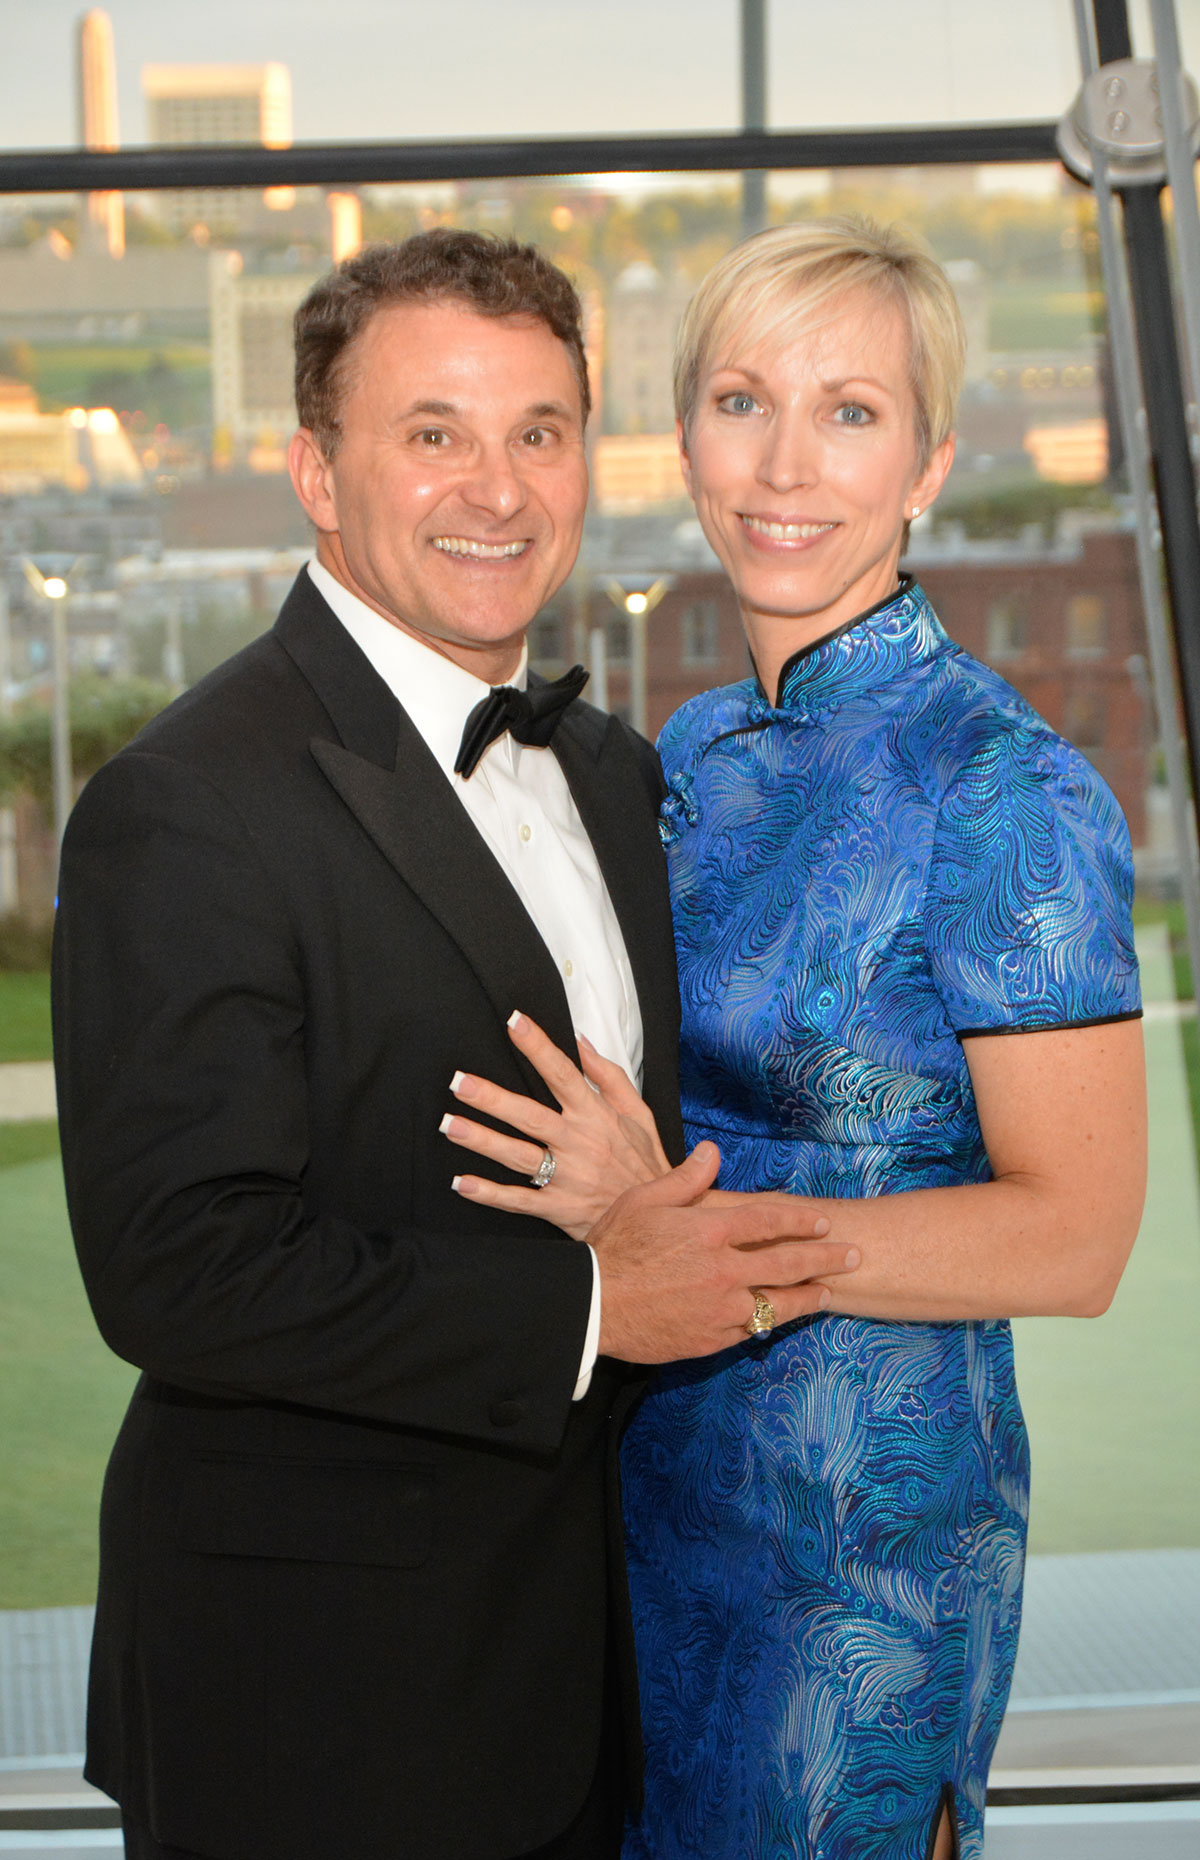 Tim and Karen Carlin at the CGSC Foundation's 2016 Celebration of International Friendship at the Kauffman Center for the Performing Arts in downtown KC.